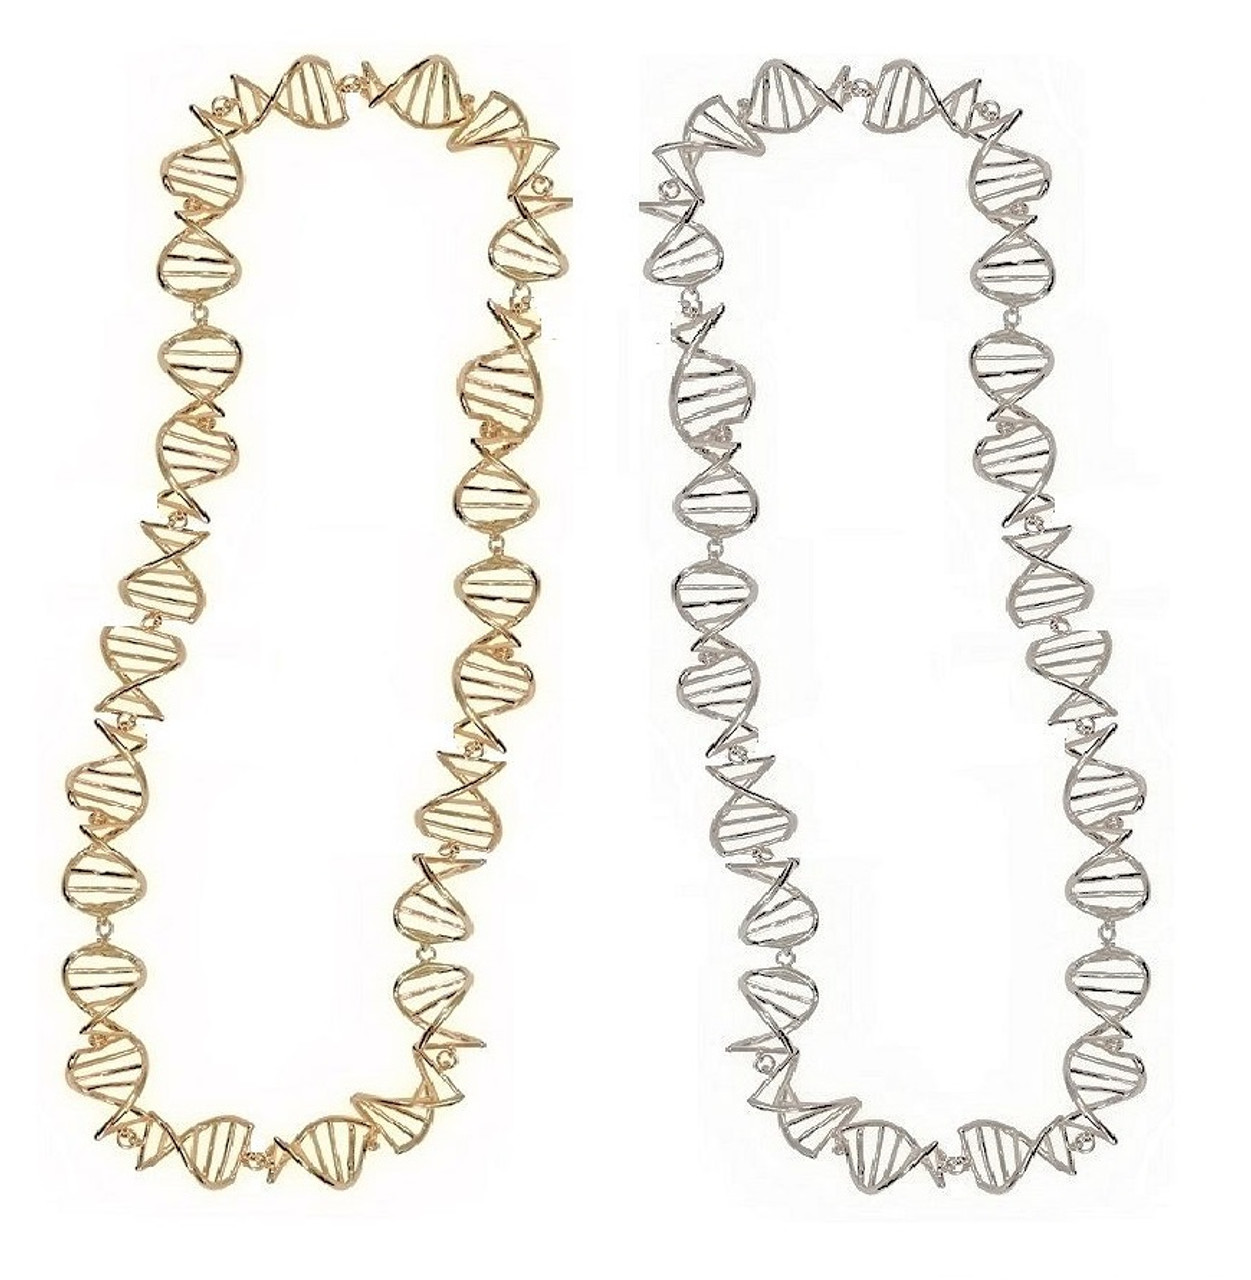 DNA Strand Necklace-Sterling with plate options